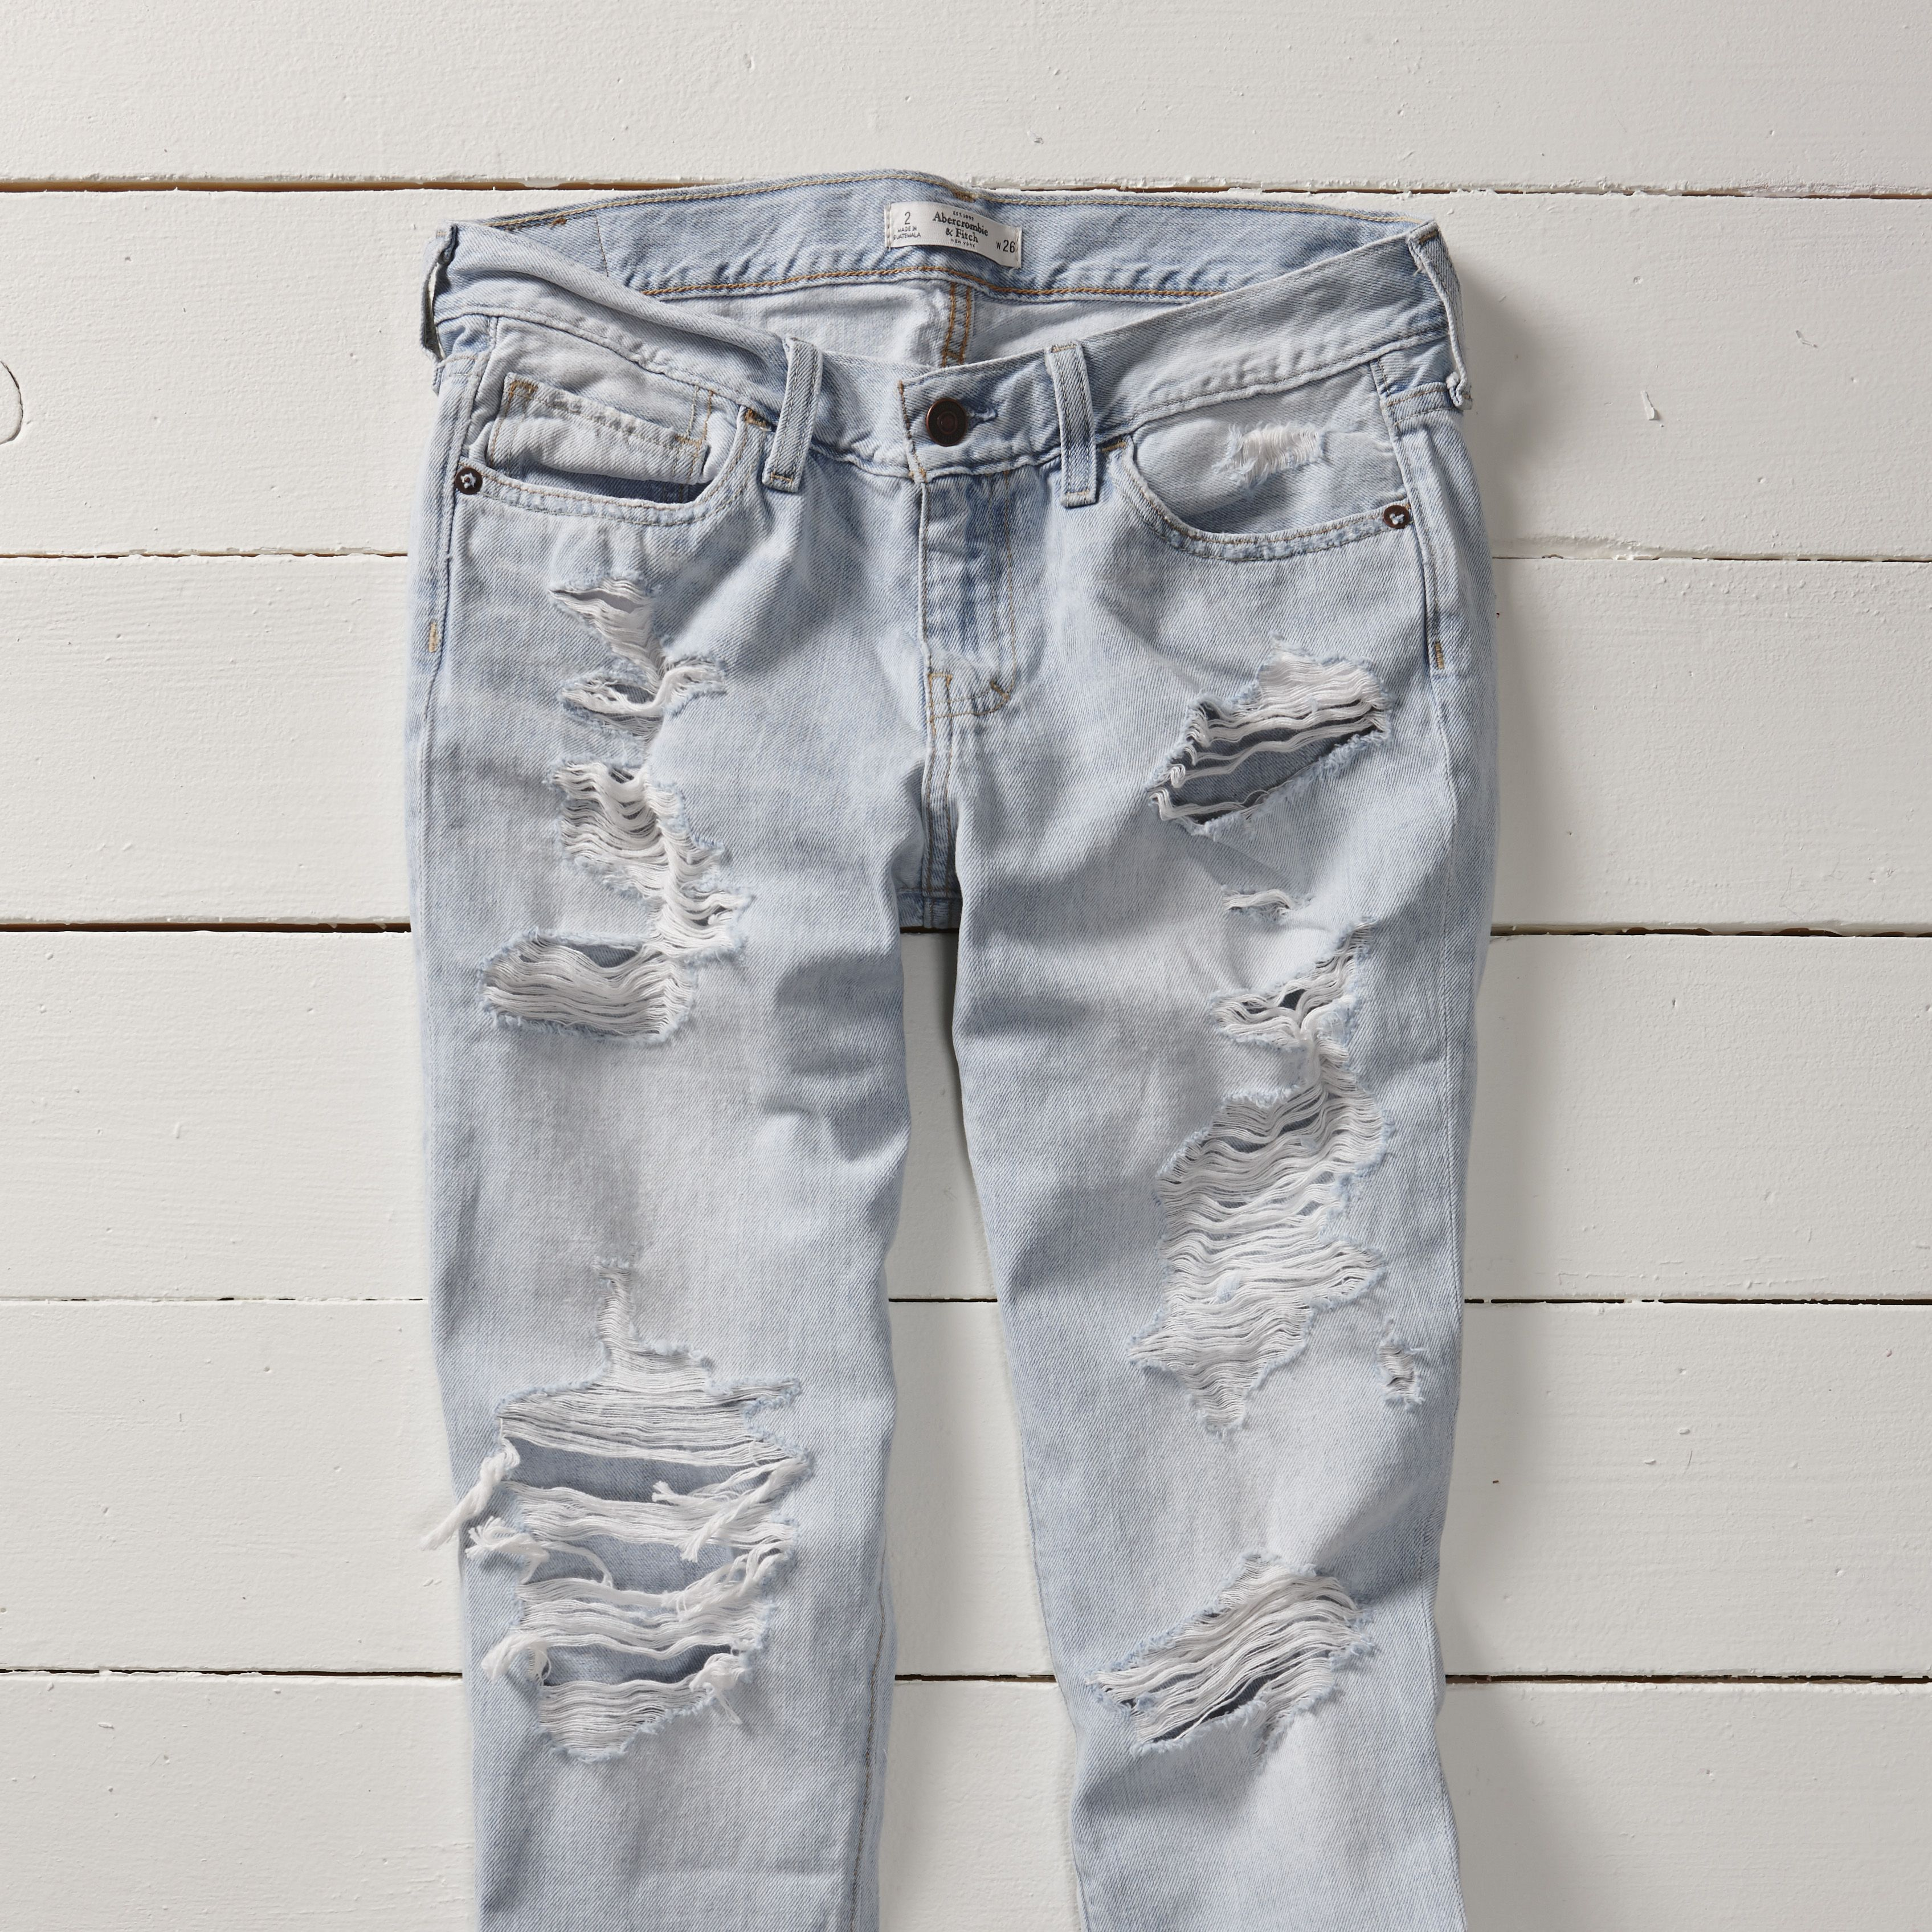 Destroyed Jeans are SO in for Spring. #EveryItFit #WornandTorn